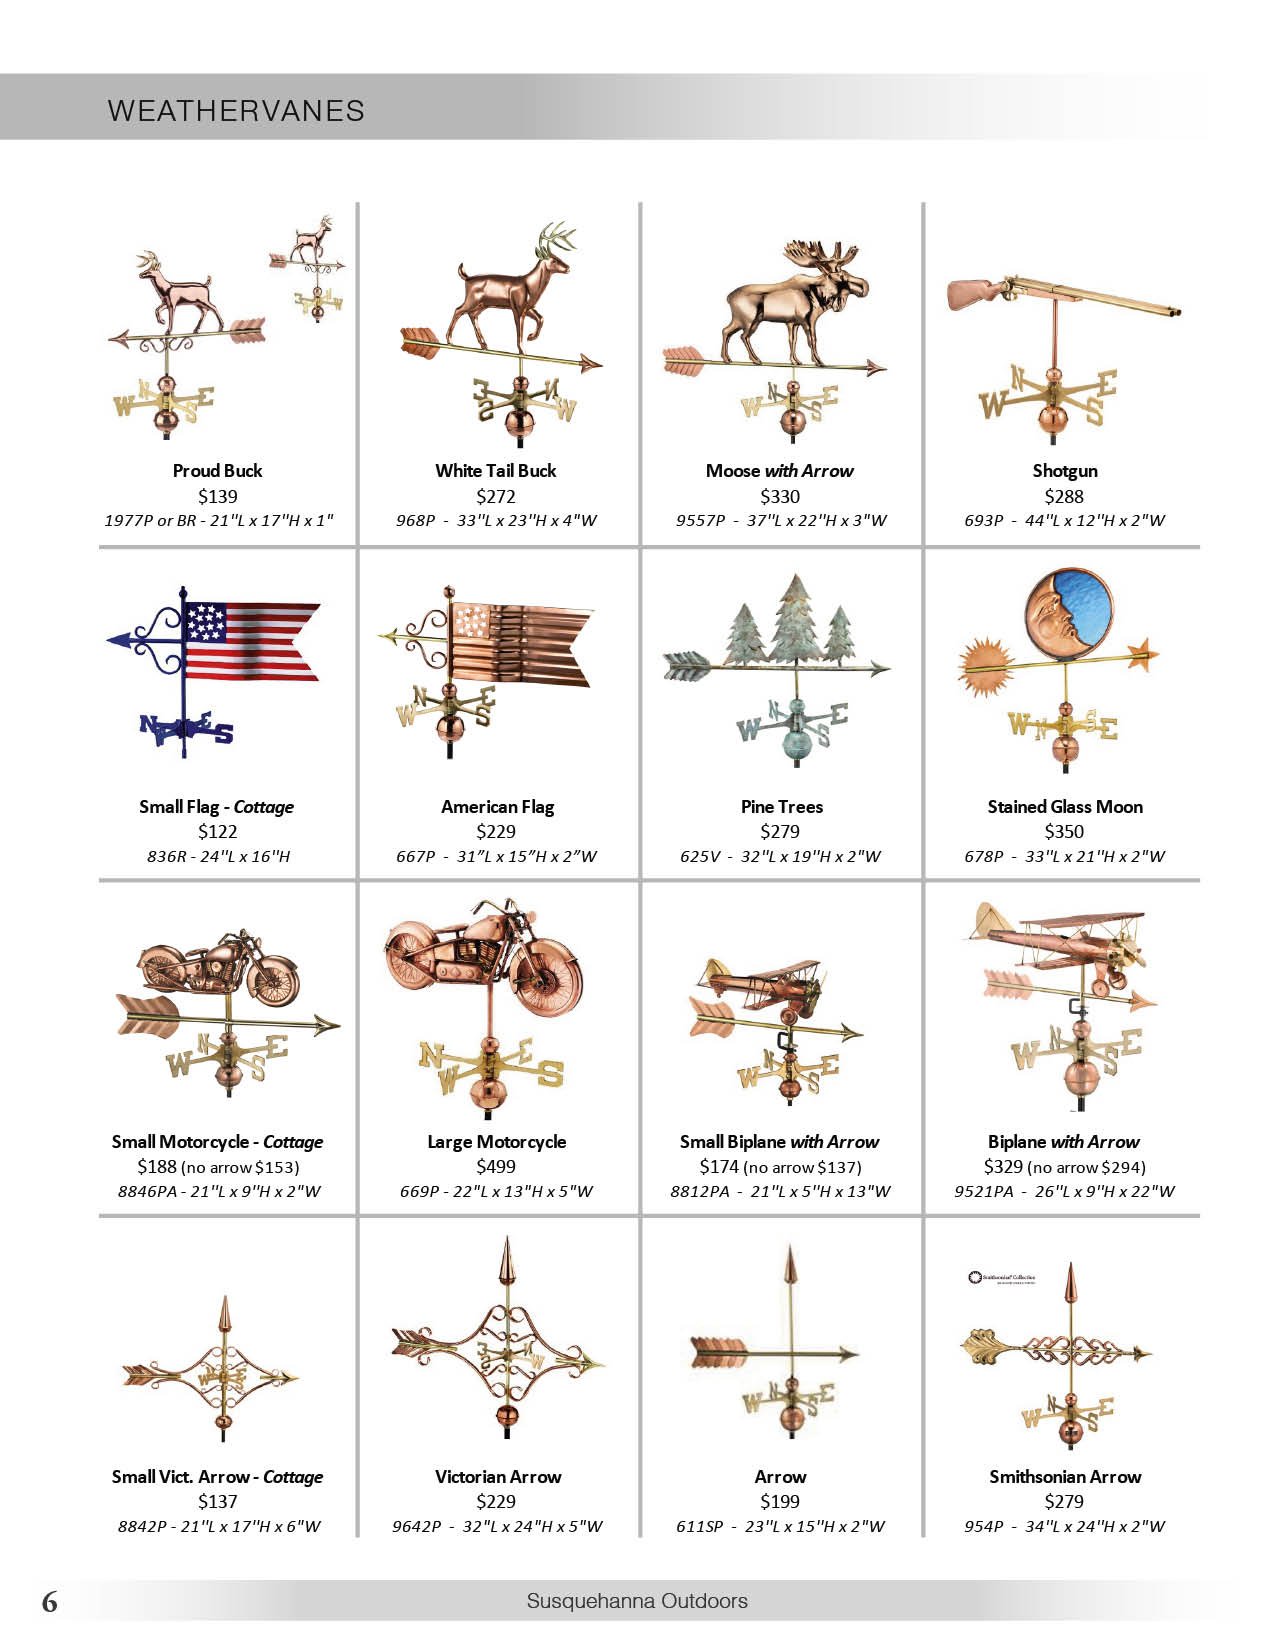 Susquehanna Outdoors Weather vanes page 6